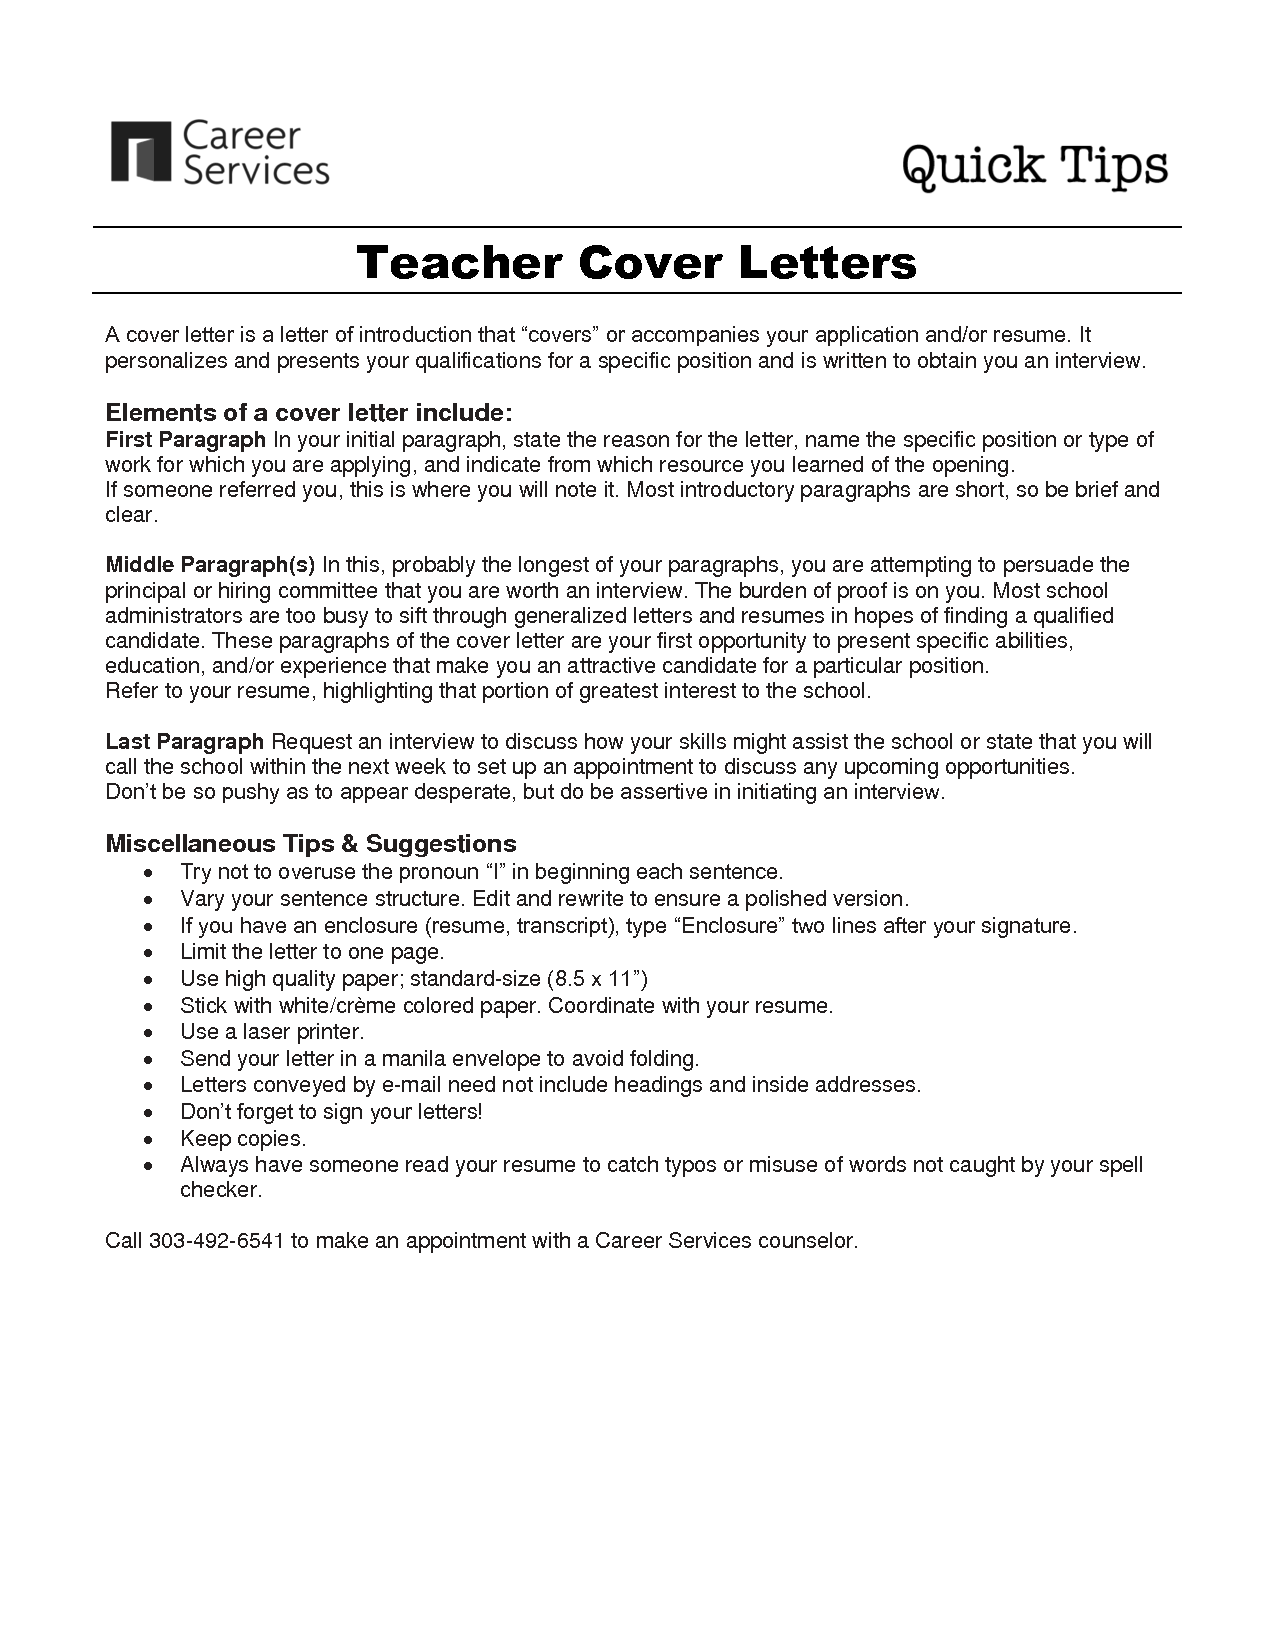 First Time Teacher Cover Letter | 1275 x 1650 · 72 kB · png, First ...